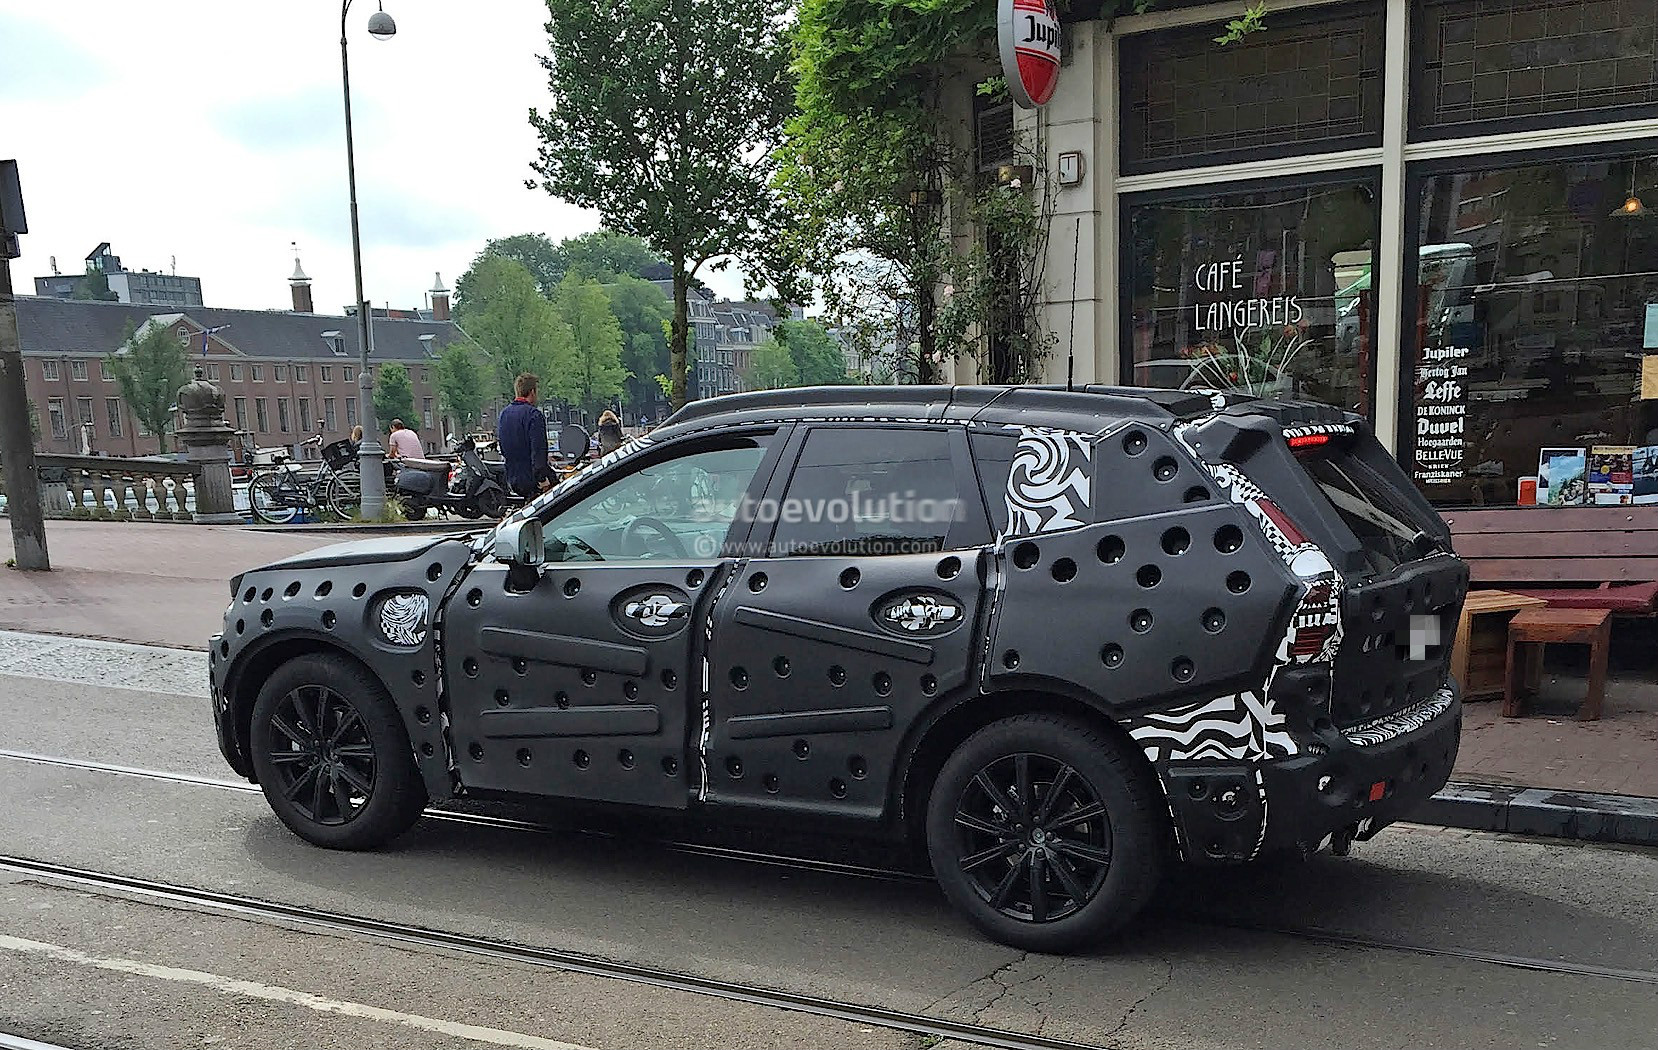 edf44eff0ec 2018 Volvo XC60 Spied For The First Time in Amsterdam - autoevolution